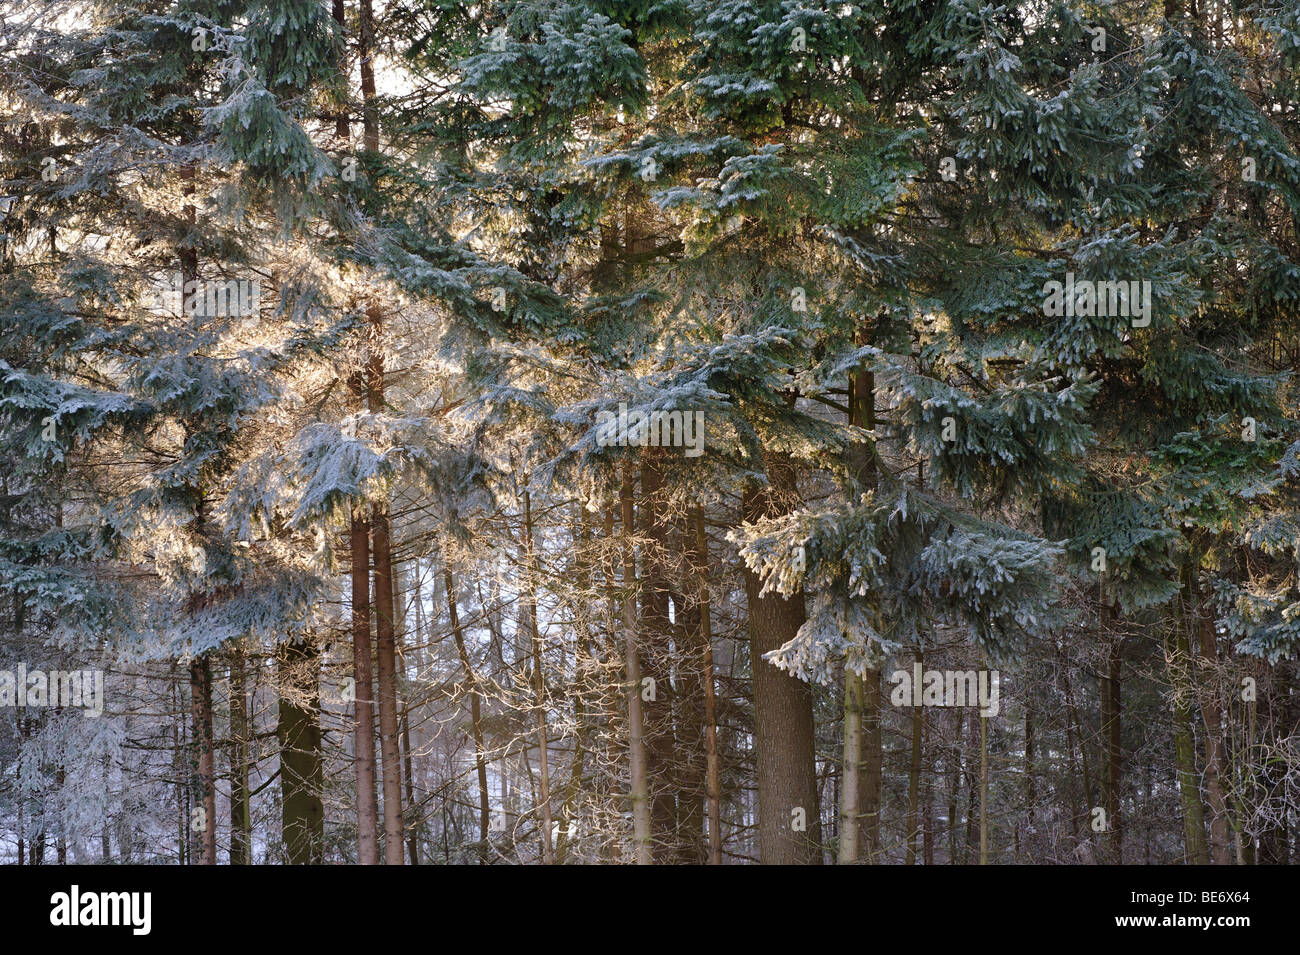 Sun shining through a hoar frost covered forest - Stock Image